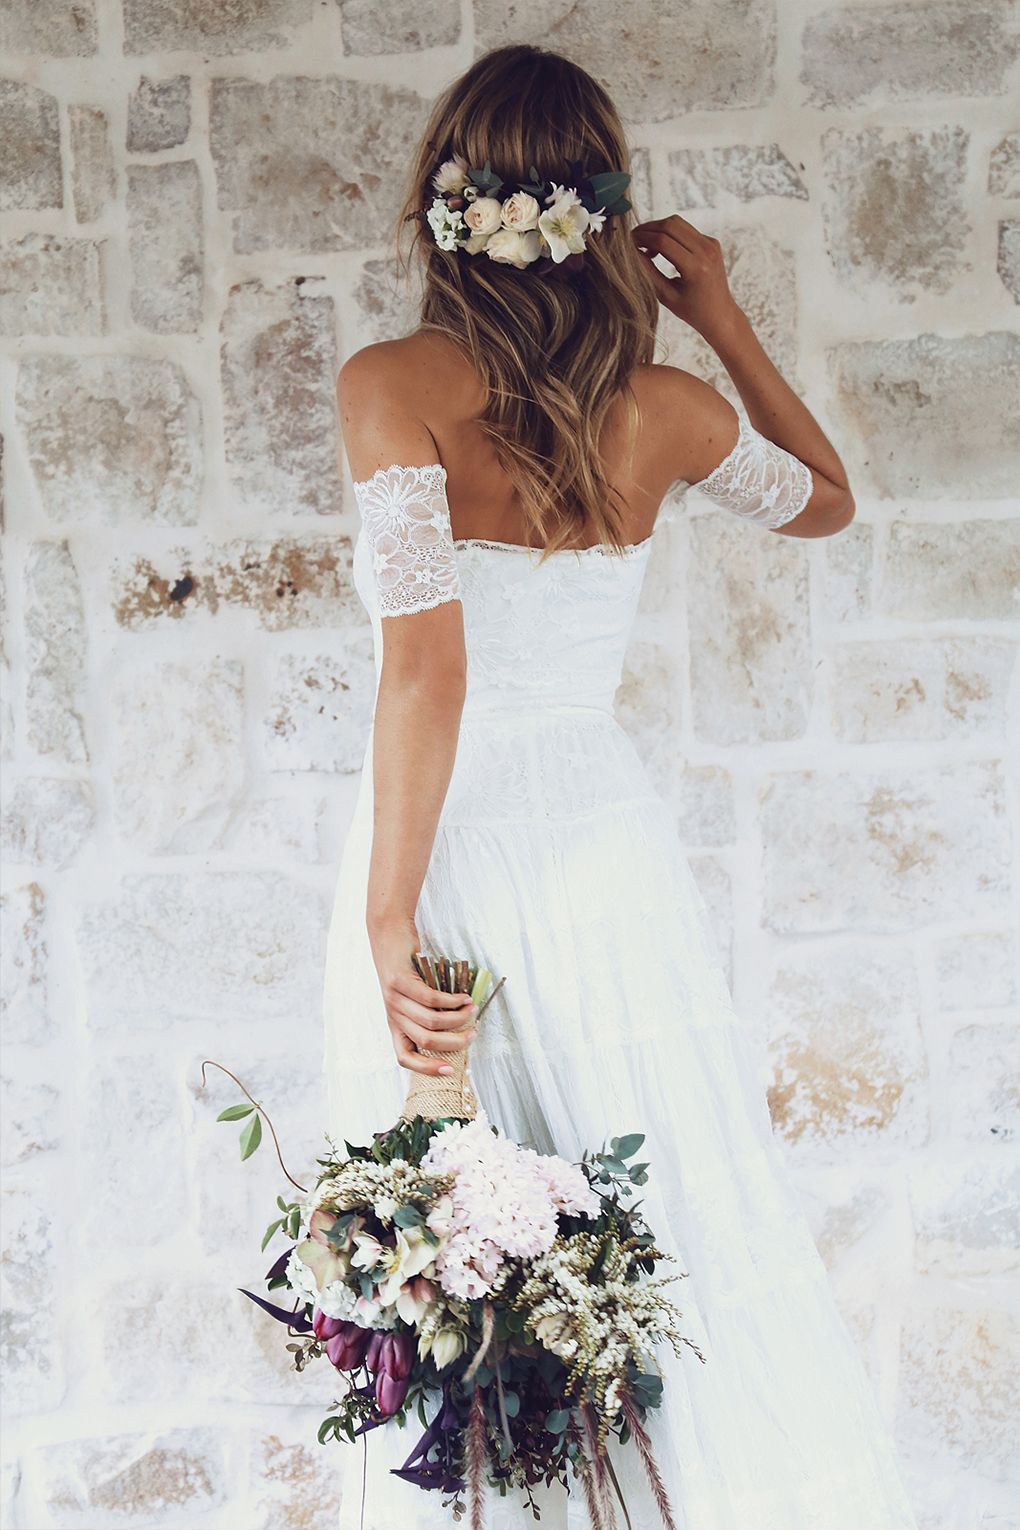 And after winter comes spring editorial wedding themes pinterest